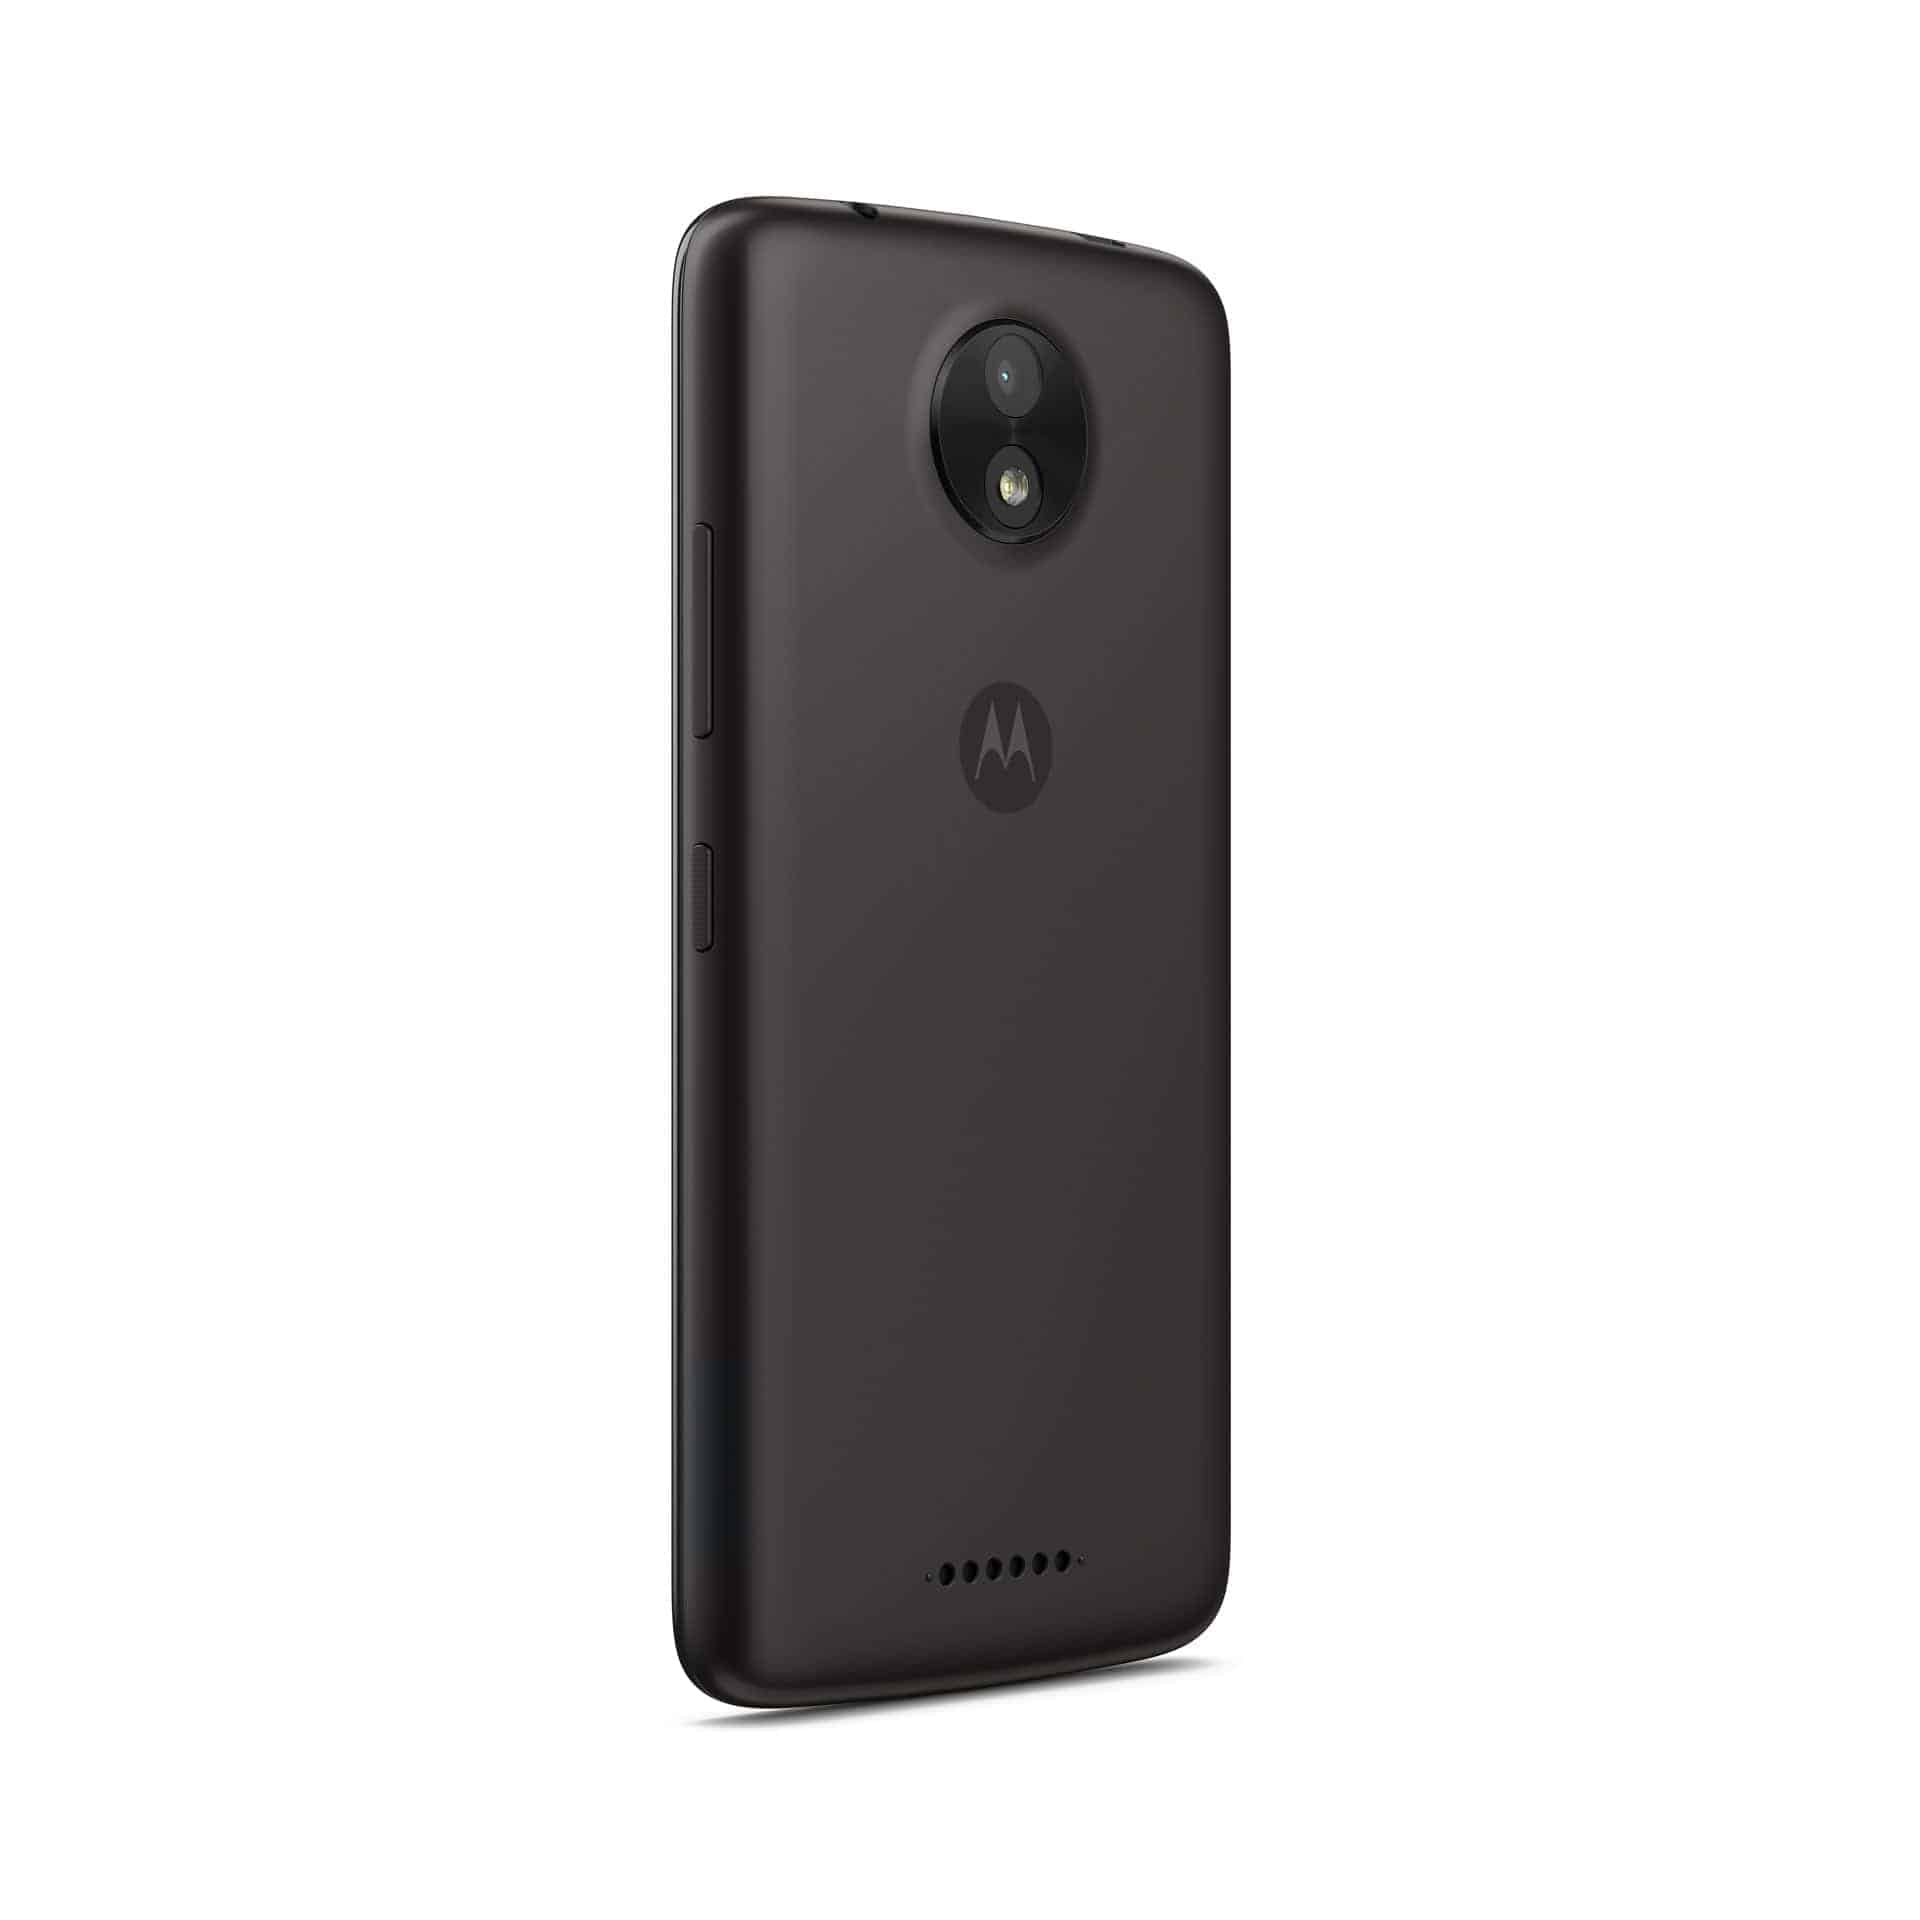 Moto C Starry Black Back Angle